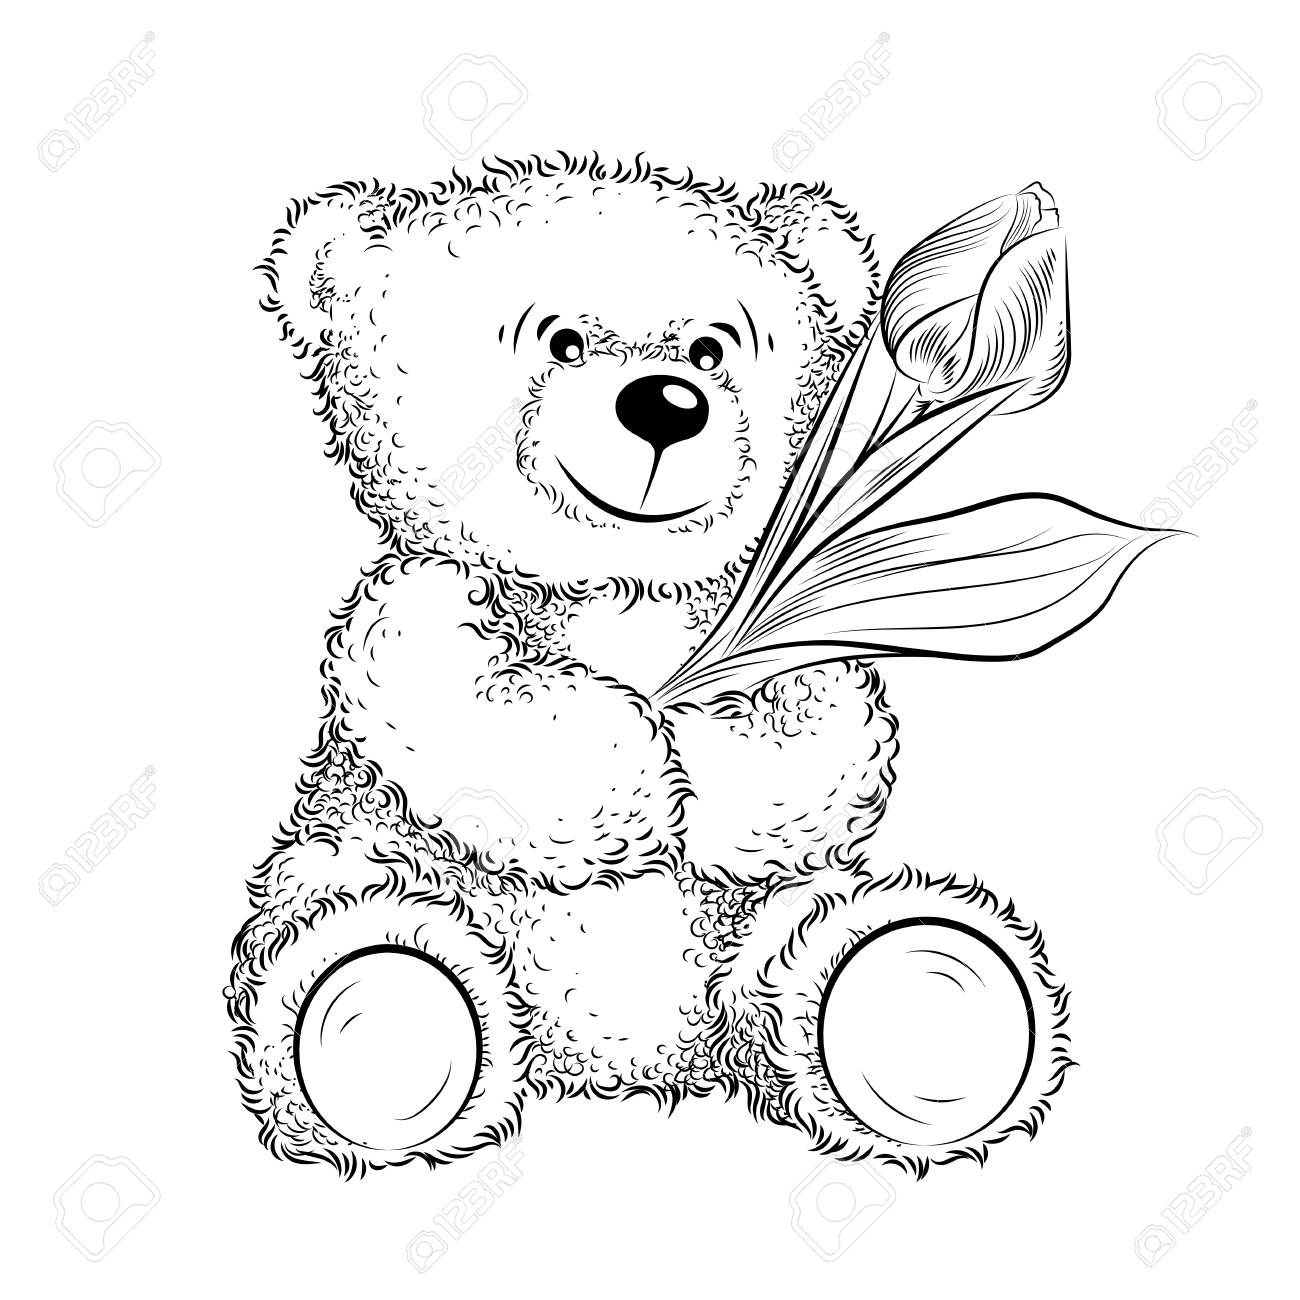 Drawing Teddy Bear With Flower Black And White Vector Illustration Royalty Free Cliparts Vectors And Stock Illustration Image 124849684